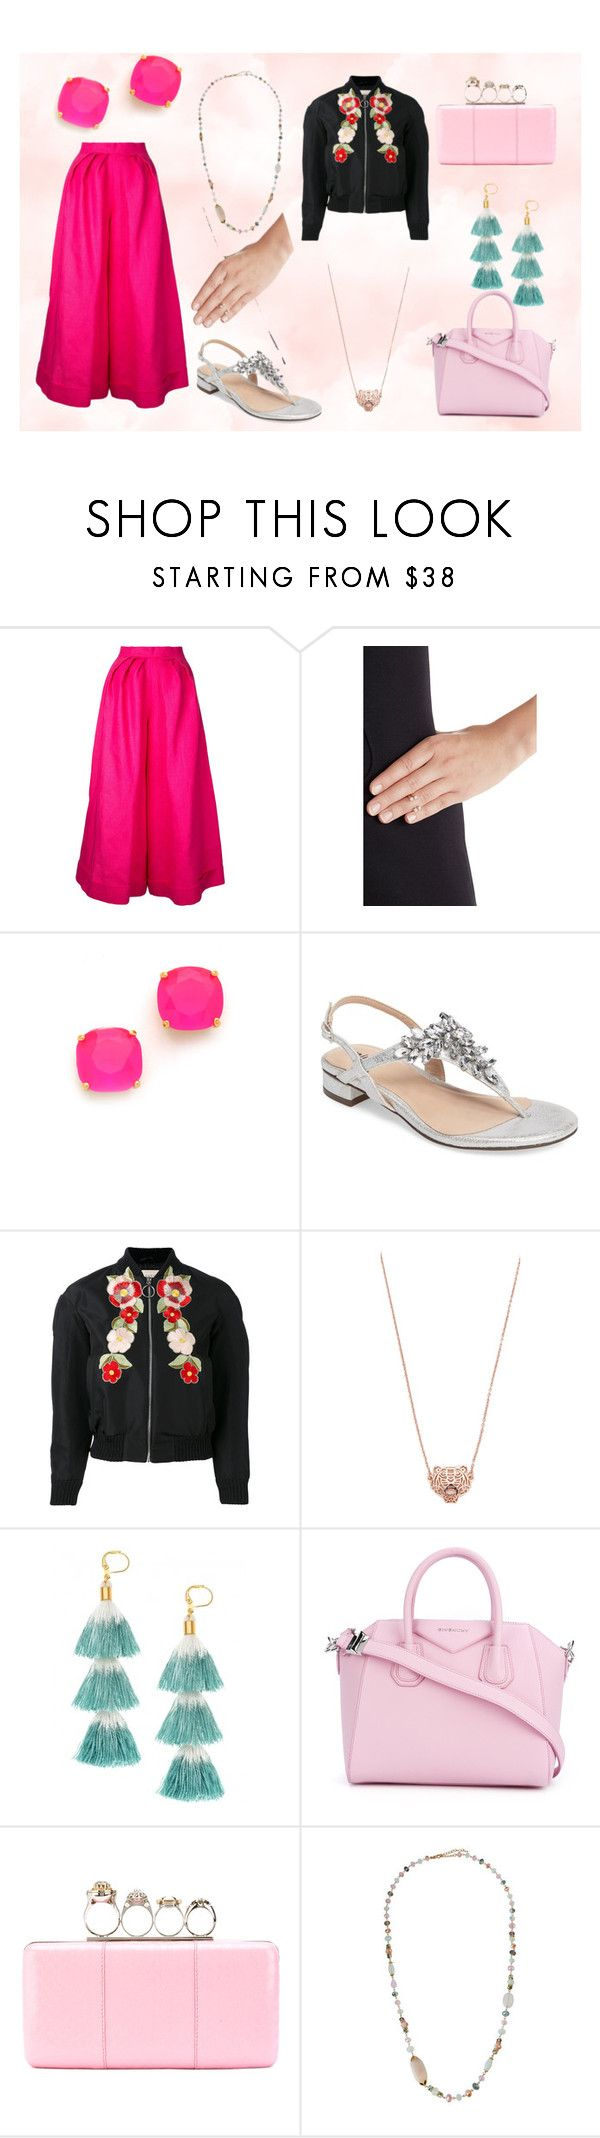 """""""Pink for You"""" by justinallison ❤ liked on Polyvore featuring Delpozo, Delfina Delettrez, Kate Spade, Pink Paradox London, Gucci, Kenzo, Shashi, Givenchy, Alexander McQueen and Emily & Ashley"""